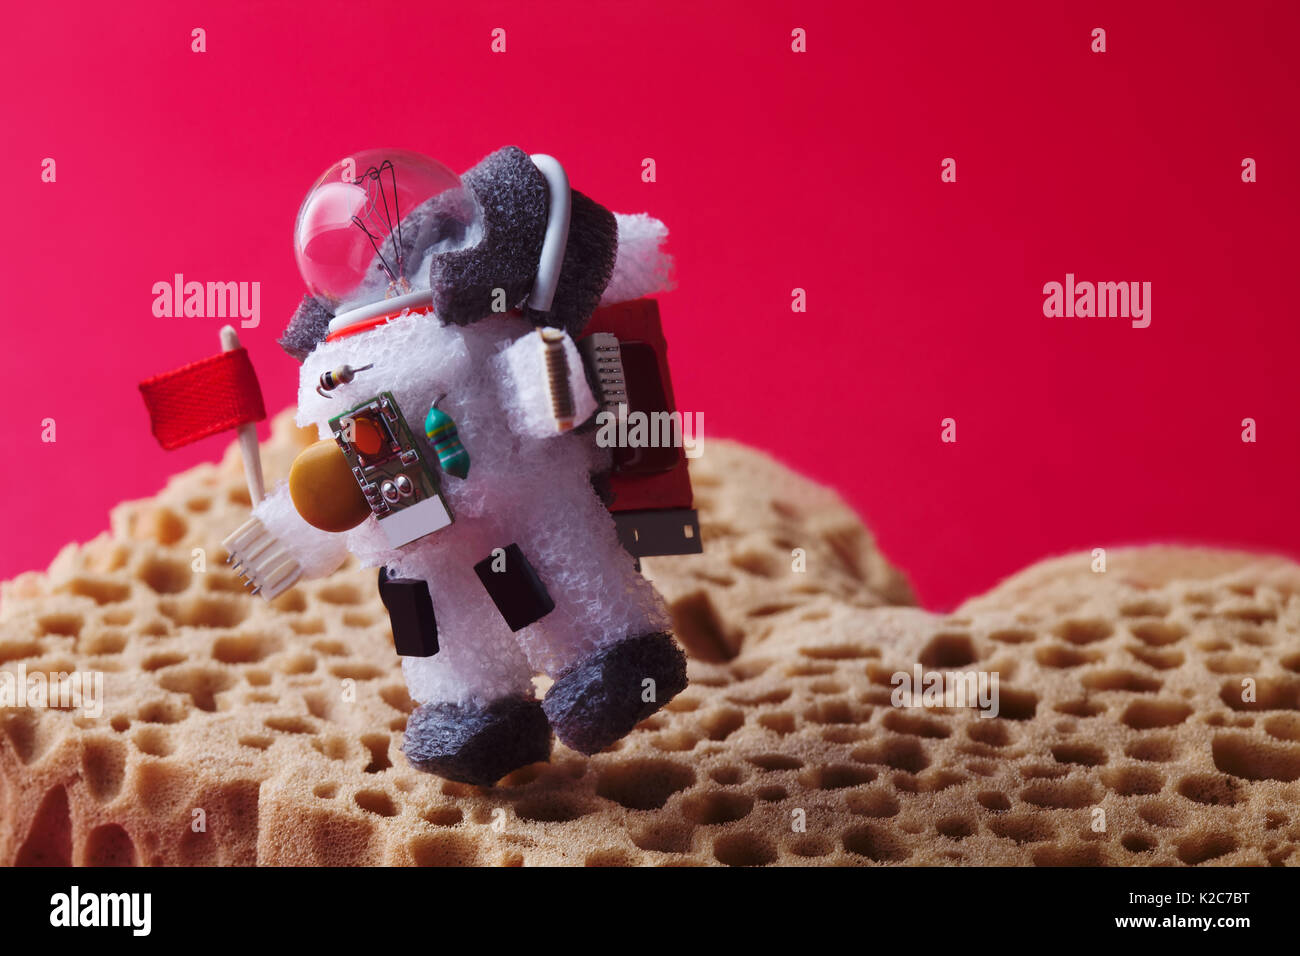 Spaceman explores red planet Mars. Light bulb character dressed in spacesuit and astronaut ammunition. Cosmonaut with flag walking abstract landscape. creative astronomic concept. Horizontal - Stock Image